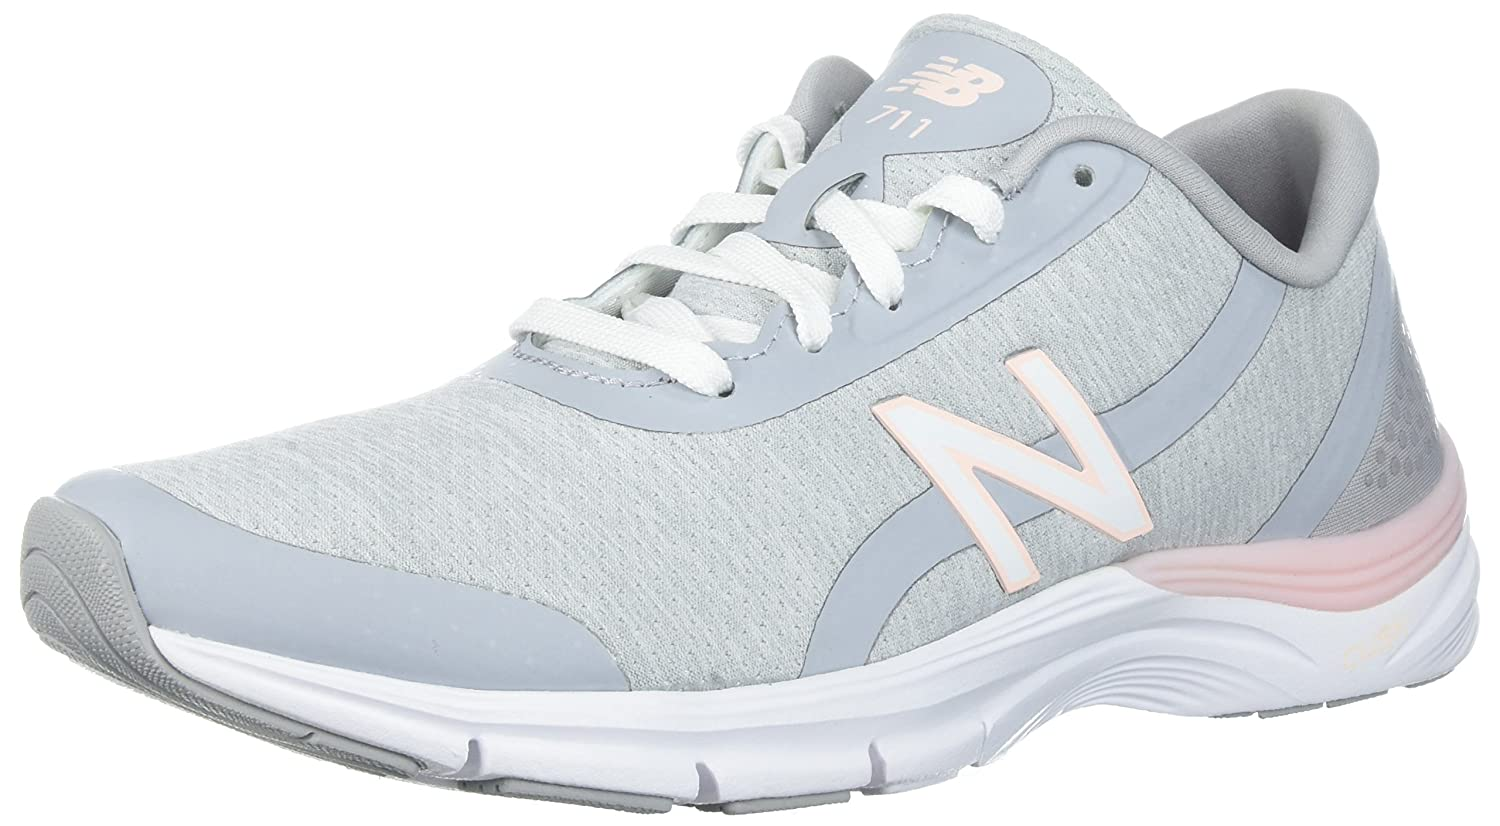 New Balance Women's 711v3 Cross Trainer B06XRWVL75 9 B(M) US|White